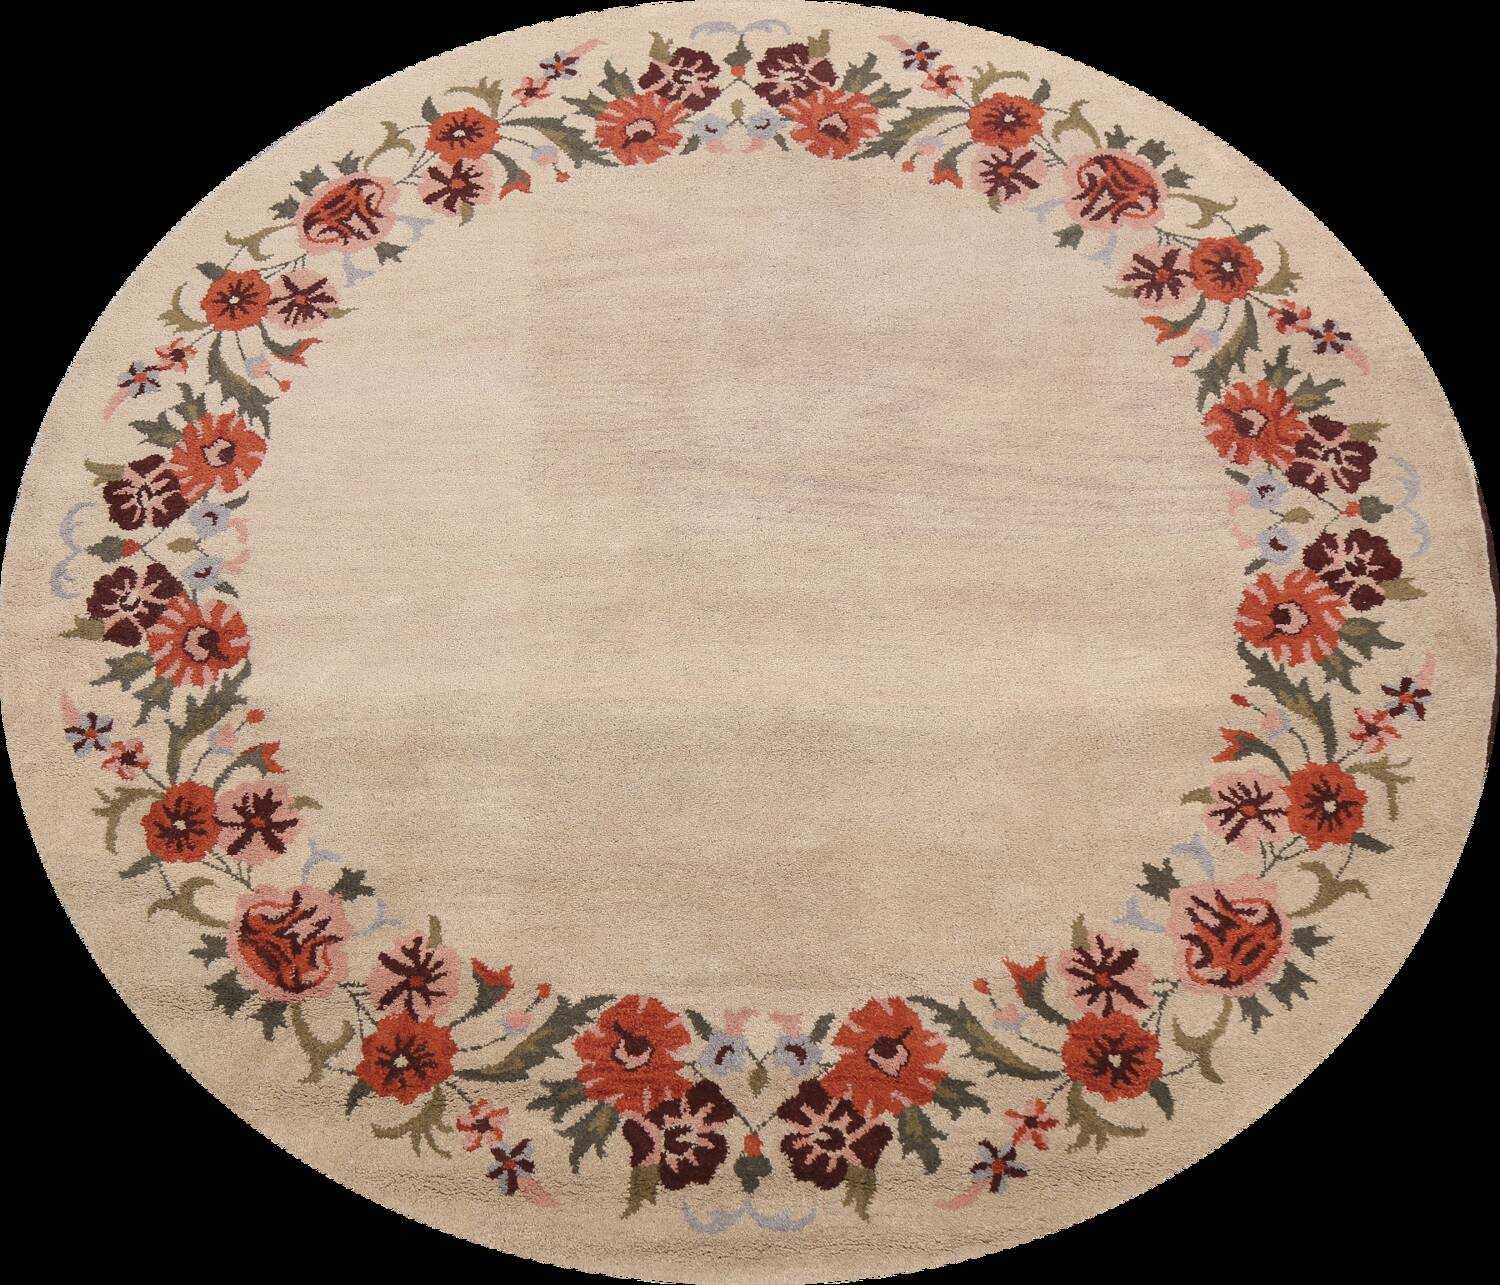 Floral Round Rug 8x8 image 1